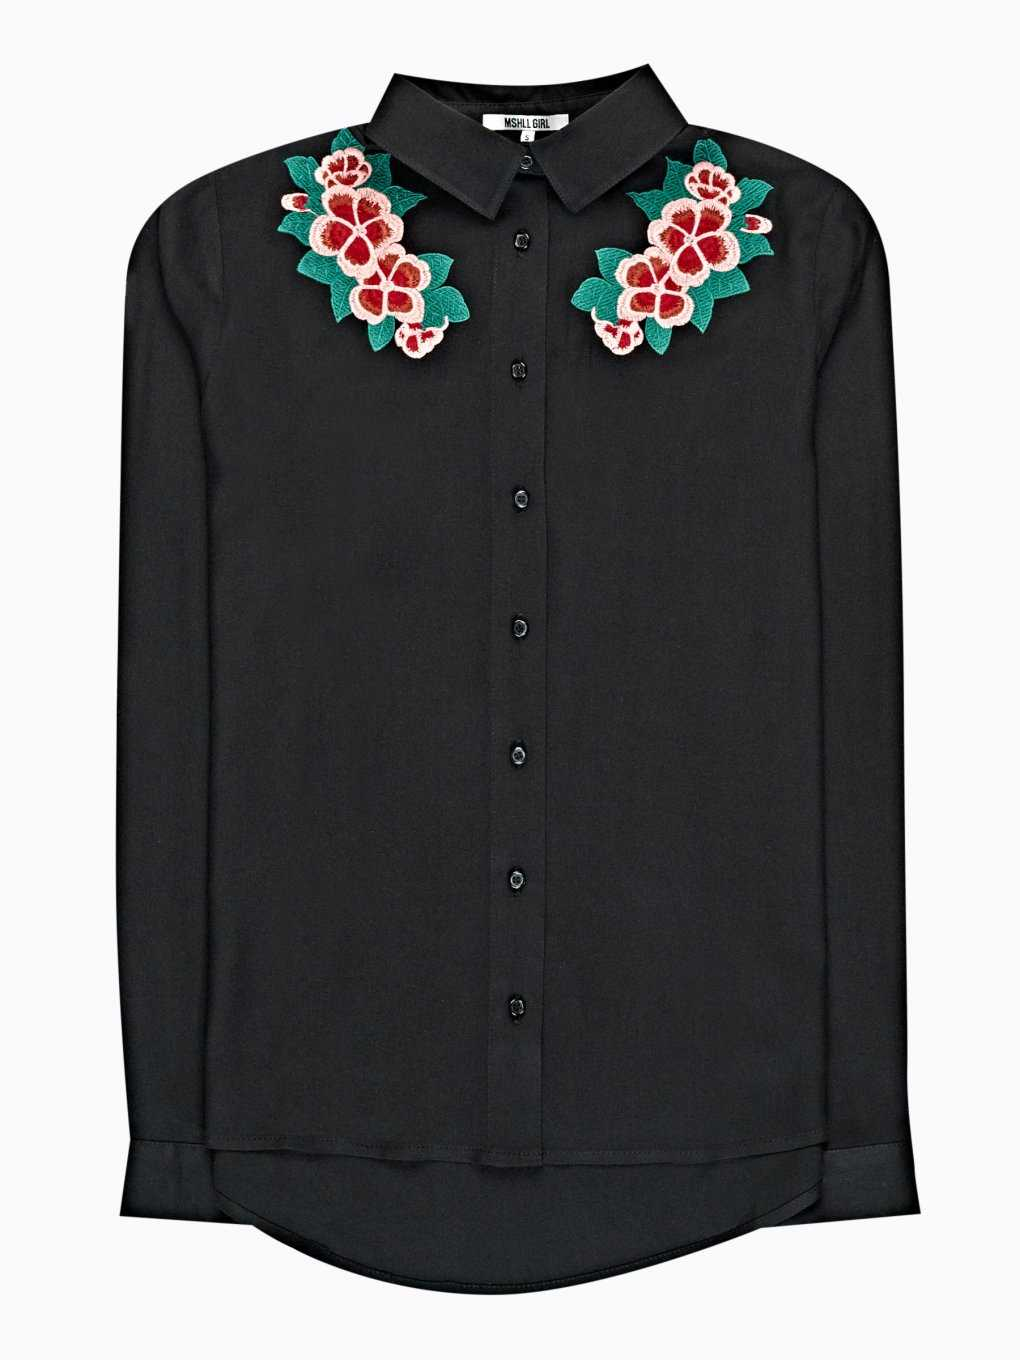 VISCOSE SHIRT WITH FLORAL EMROIDERY